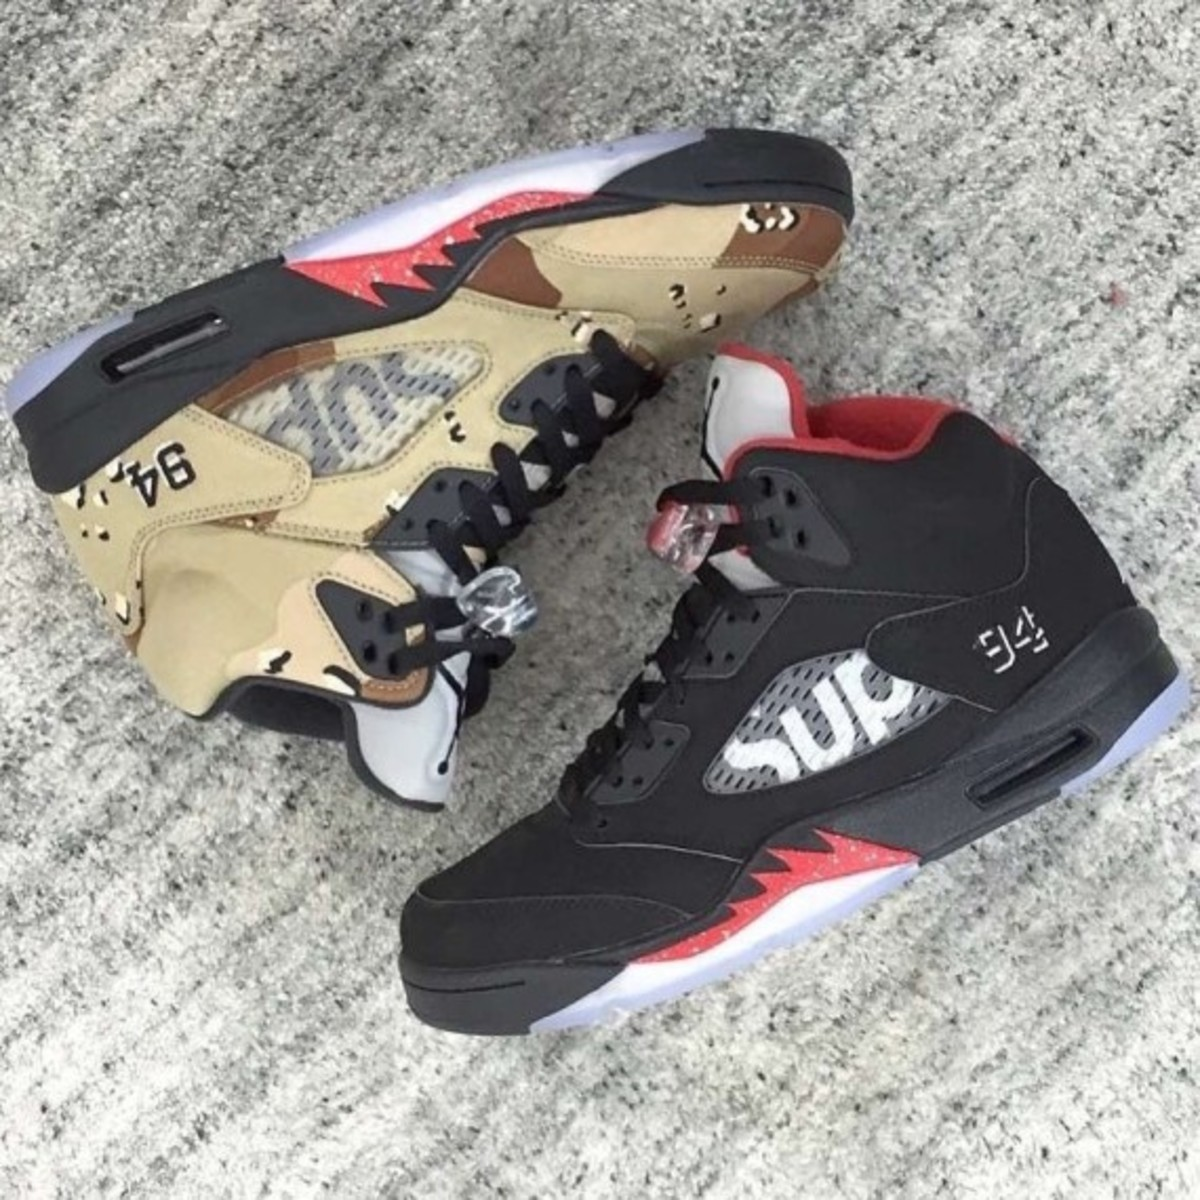 a-first-look-at-the-supreme-jordan-5-bred-02